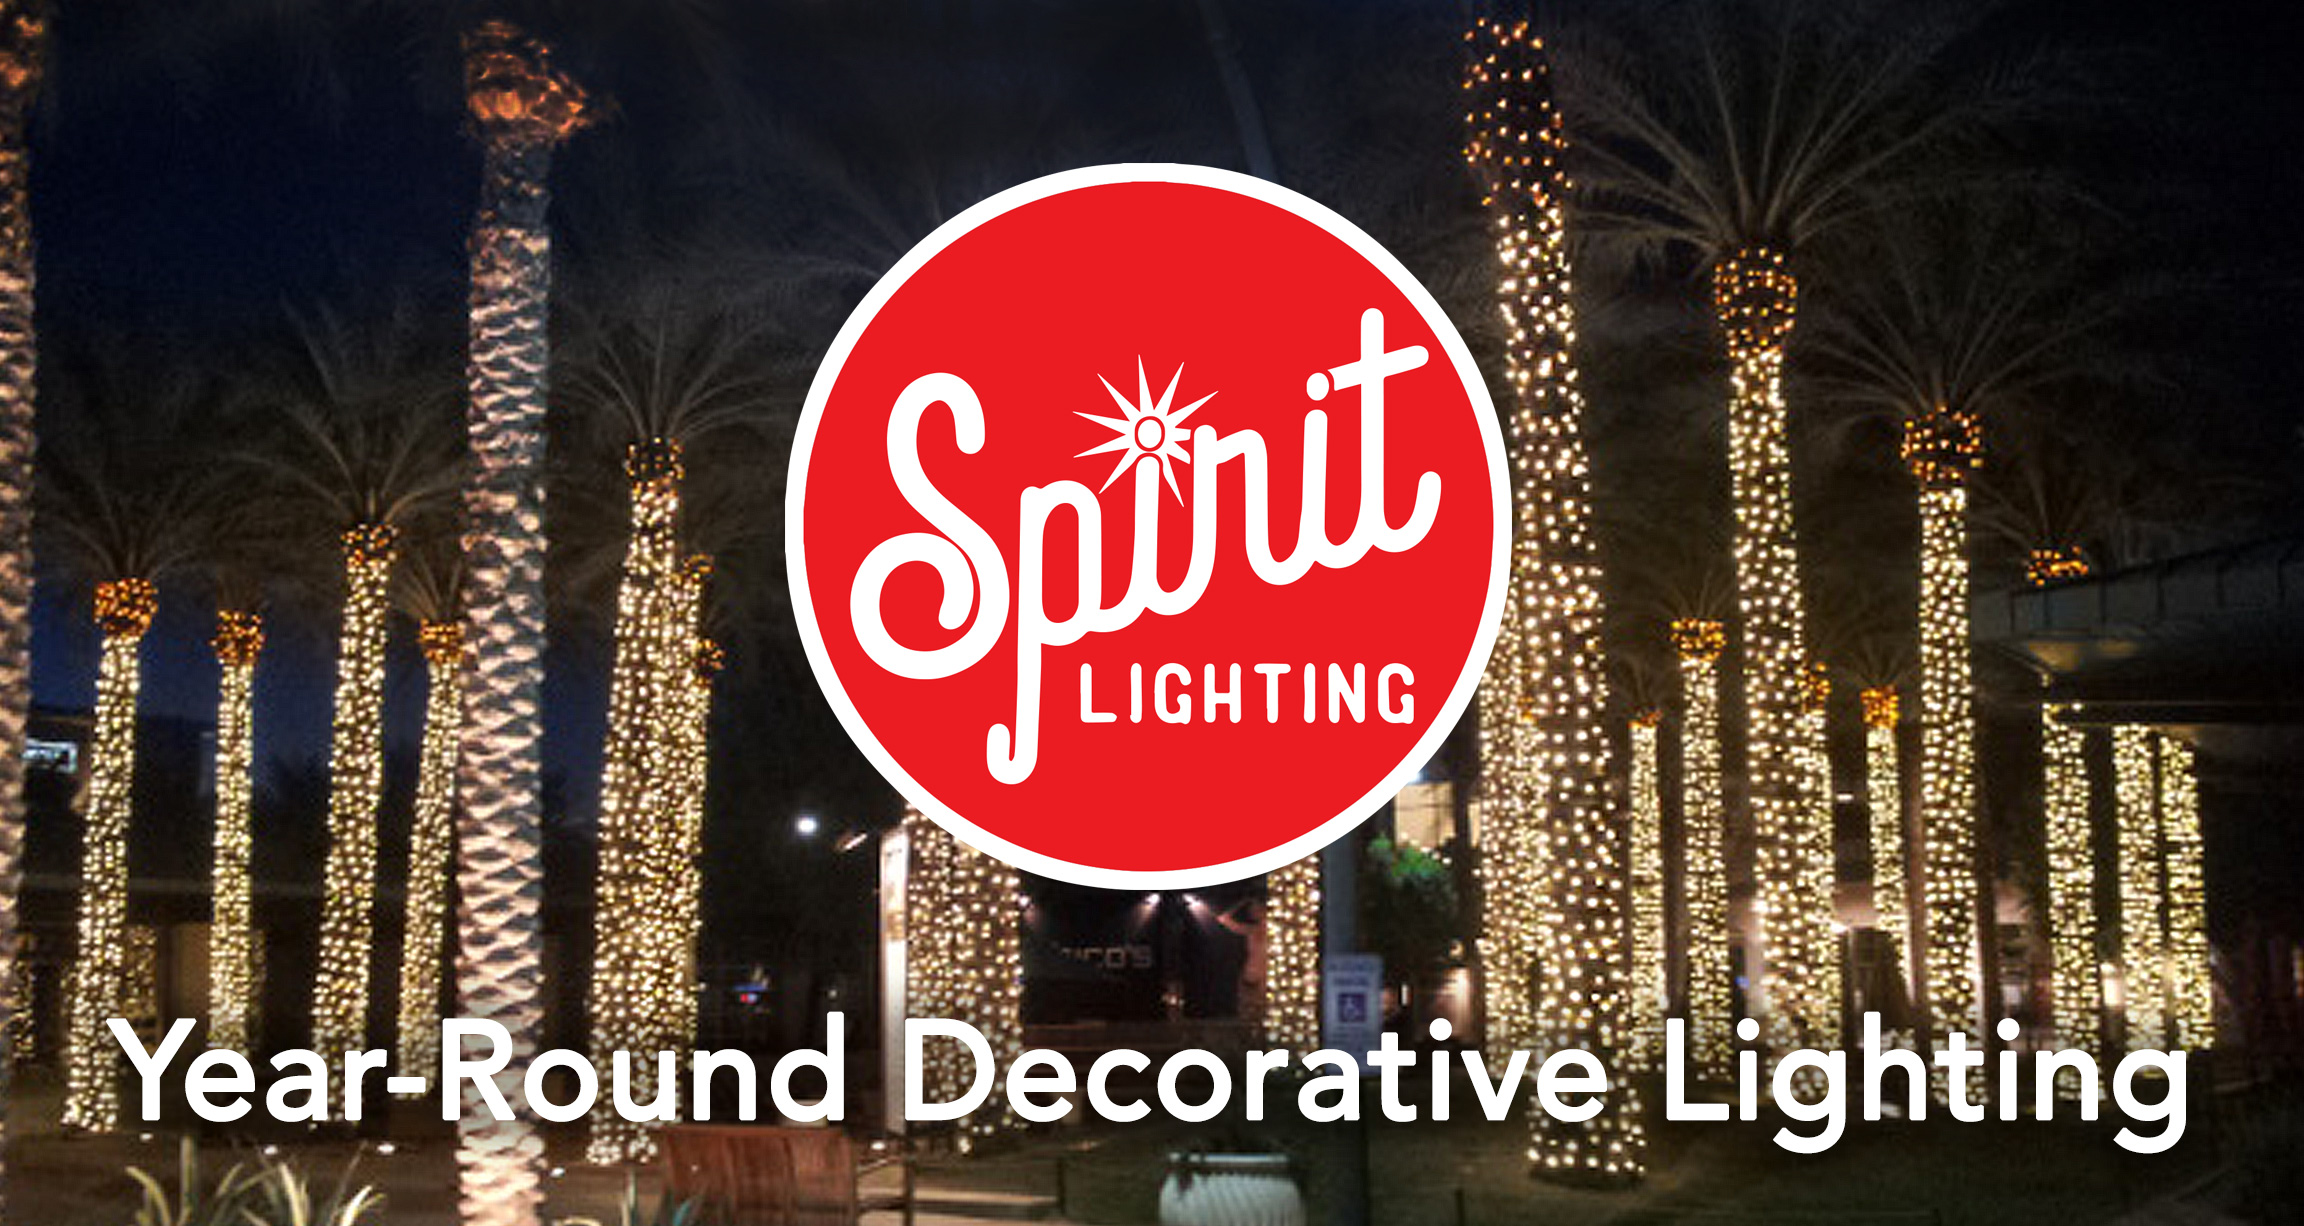 SPIRIT LIGHTING OFFERS ALL TYPES OF DECORATIVE LIGHTING THAT BOTH ILLUMINATES AND BEAUTIFIES YOUR PROPERTY